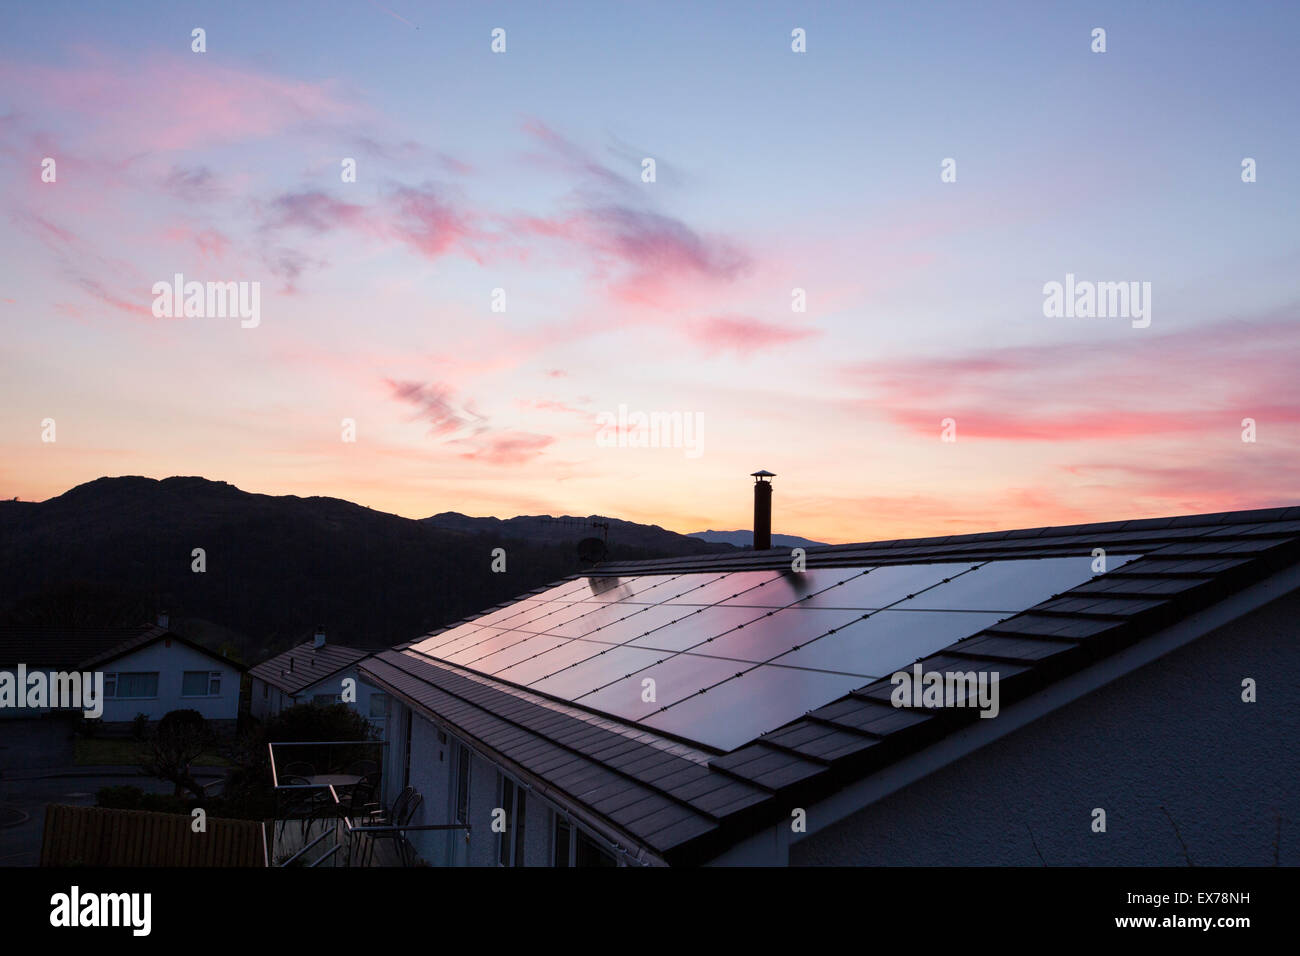 Built in solar panels on a house roof in Ambleside, Lake District, UK, at sunset. - Stock Image